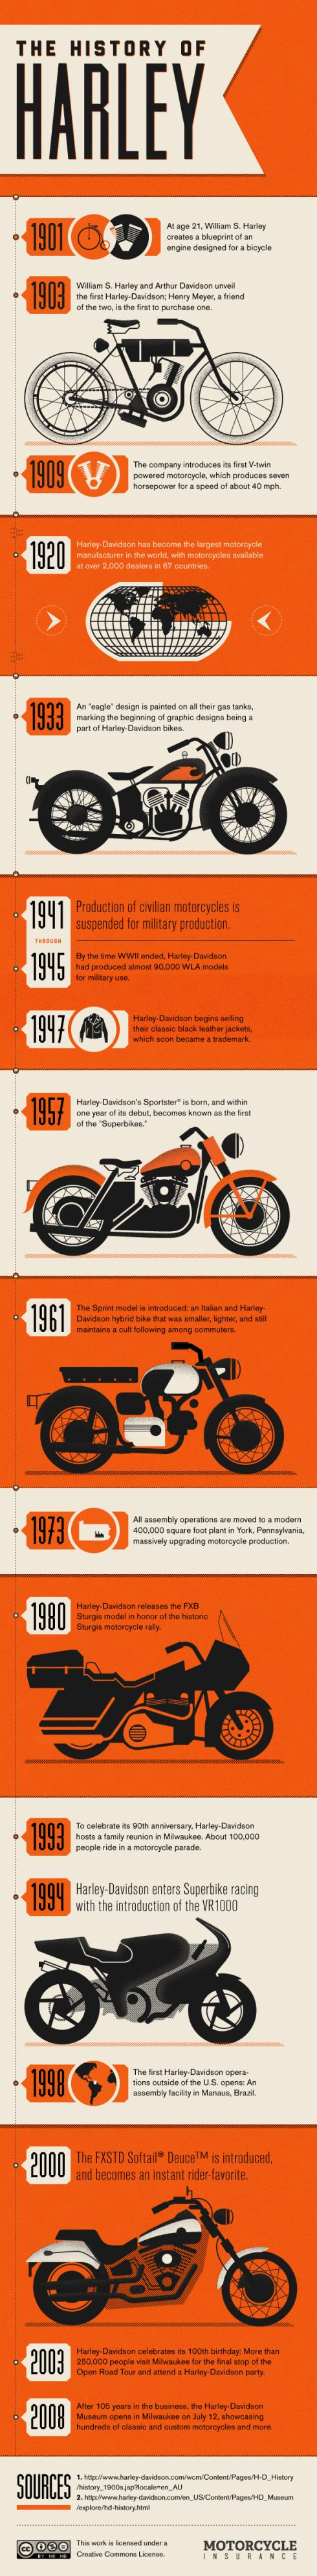 a history of the evolution of the harley davidson Authentic reproductions made by skilled manufacturers to specifications taken  from harley-davidson's expansive archive products that celebrate a proud  history.